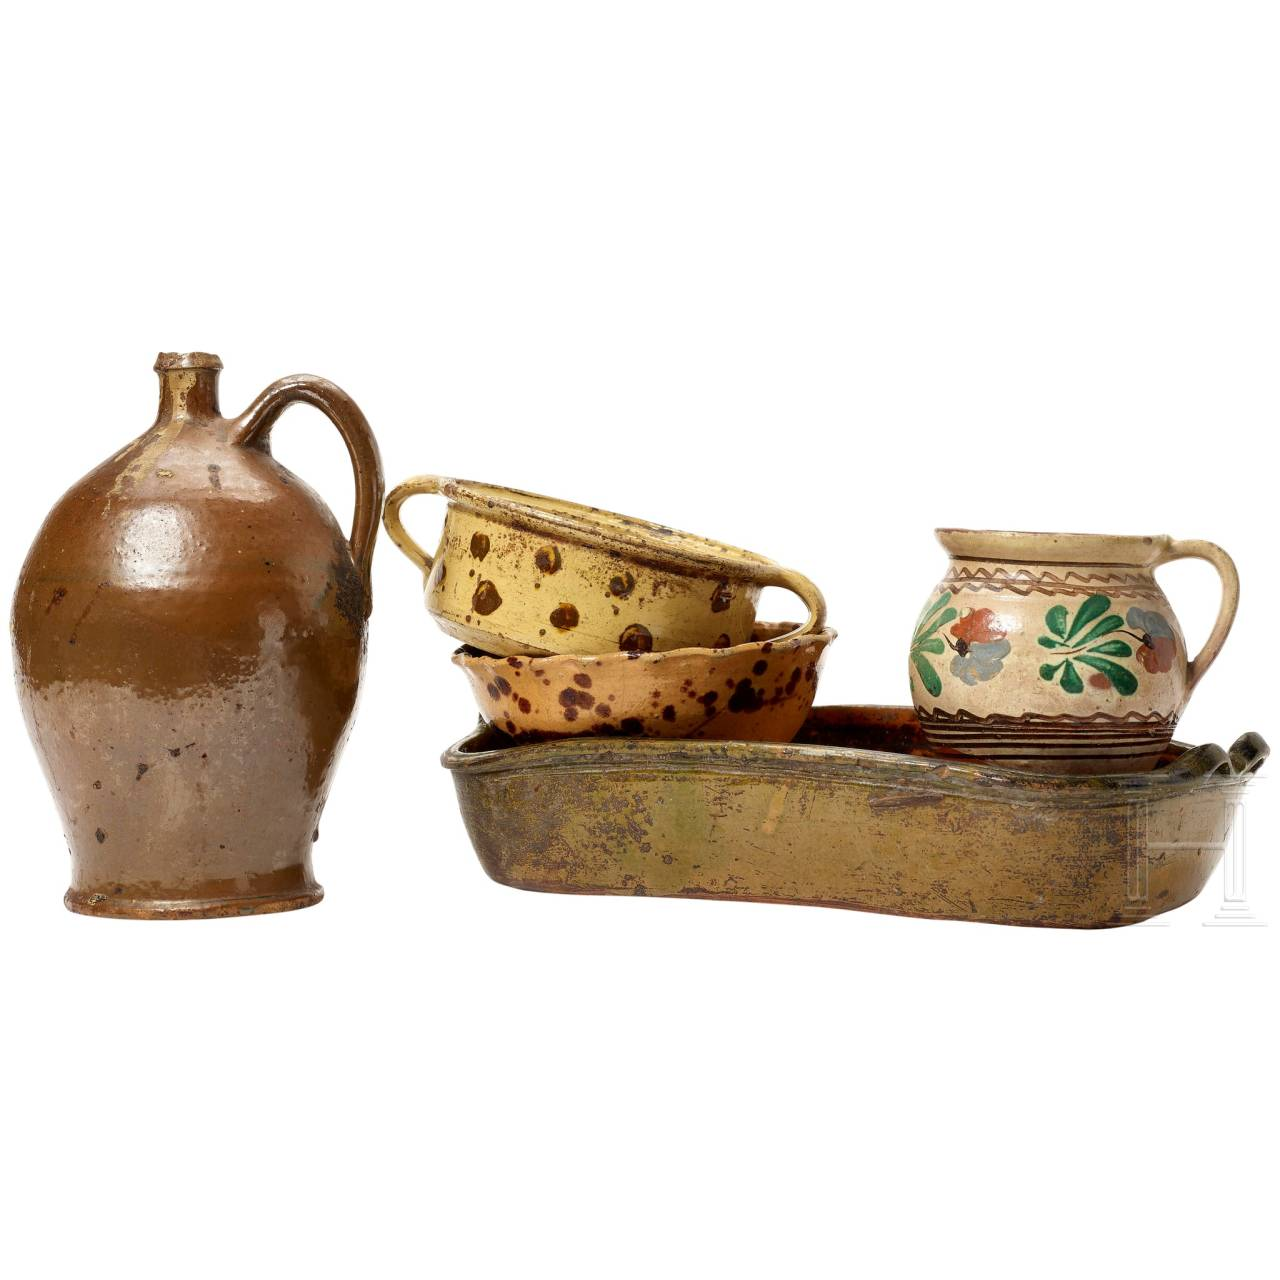 Five South German pieces of pottery, 19th century